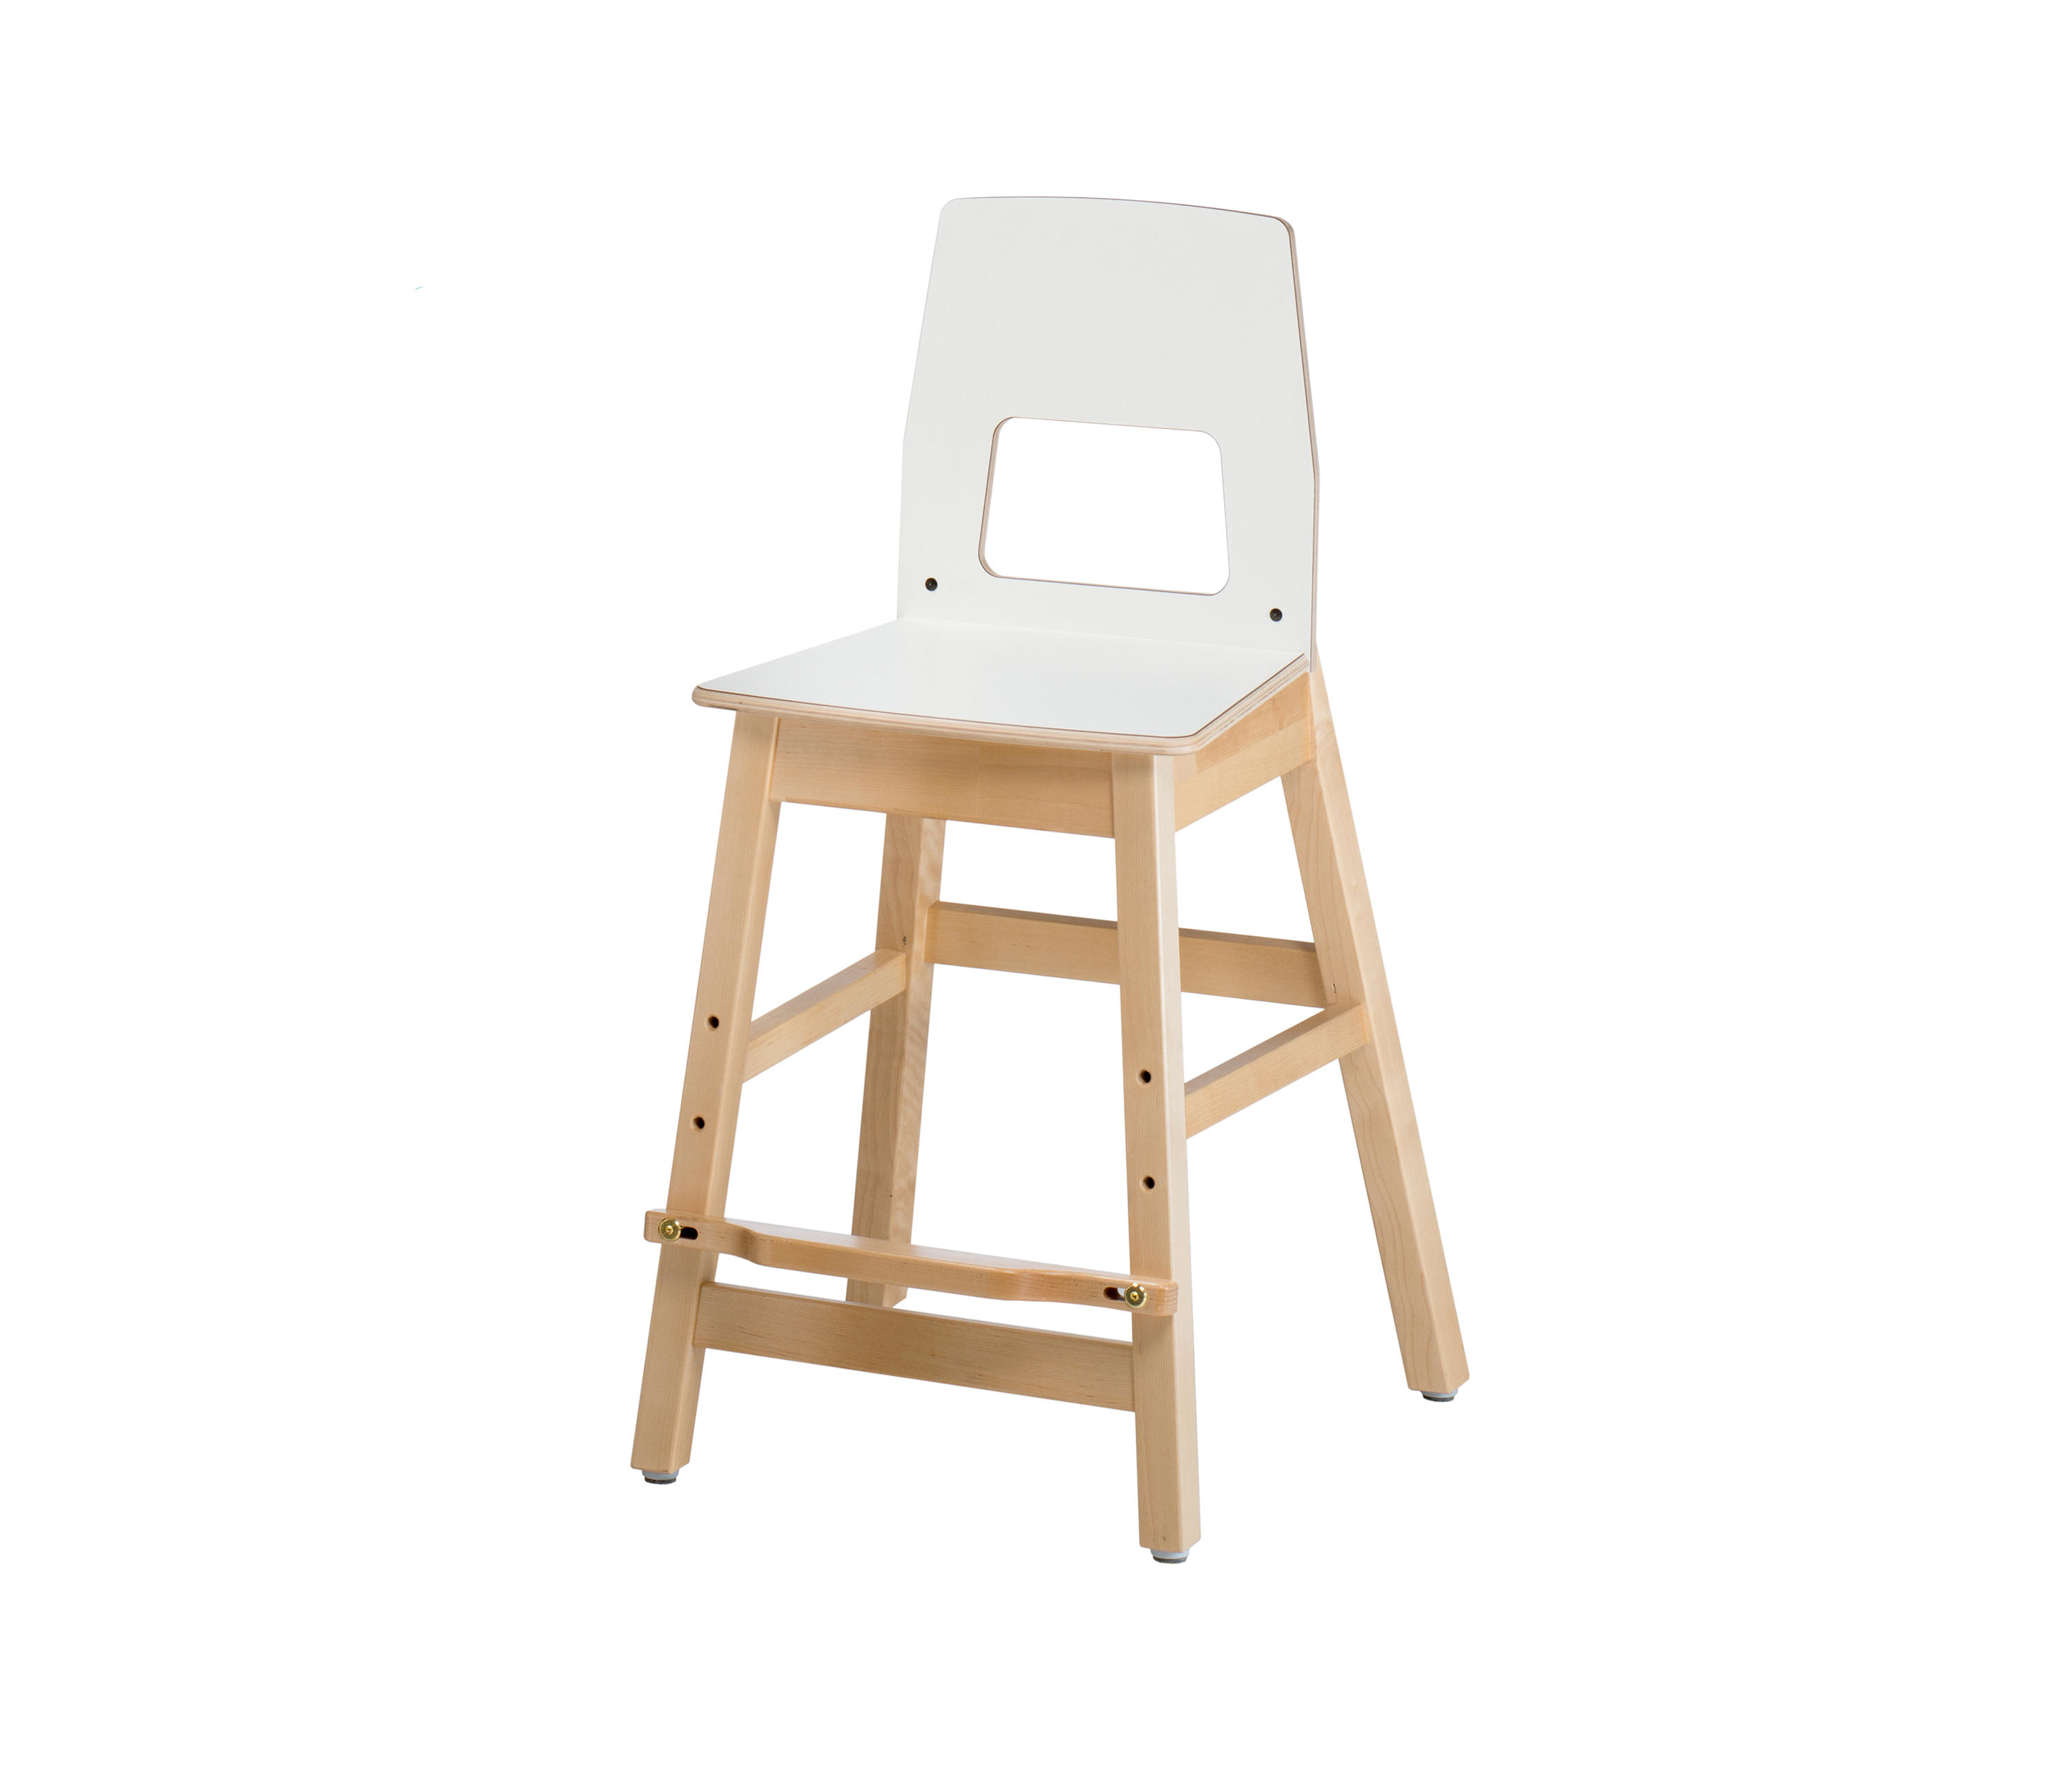 High Chair For Children Otto Ot450 By Woodi Kids Chairs